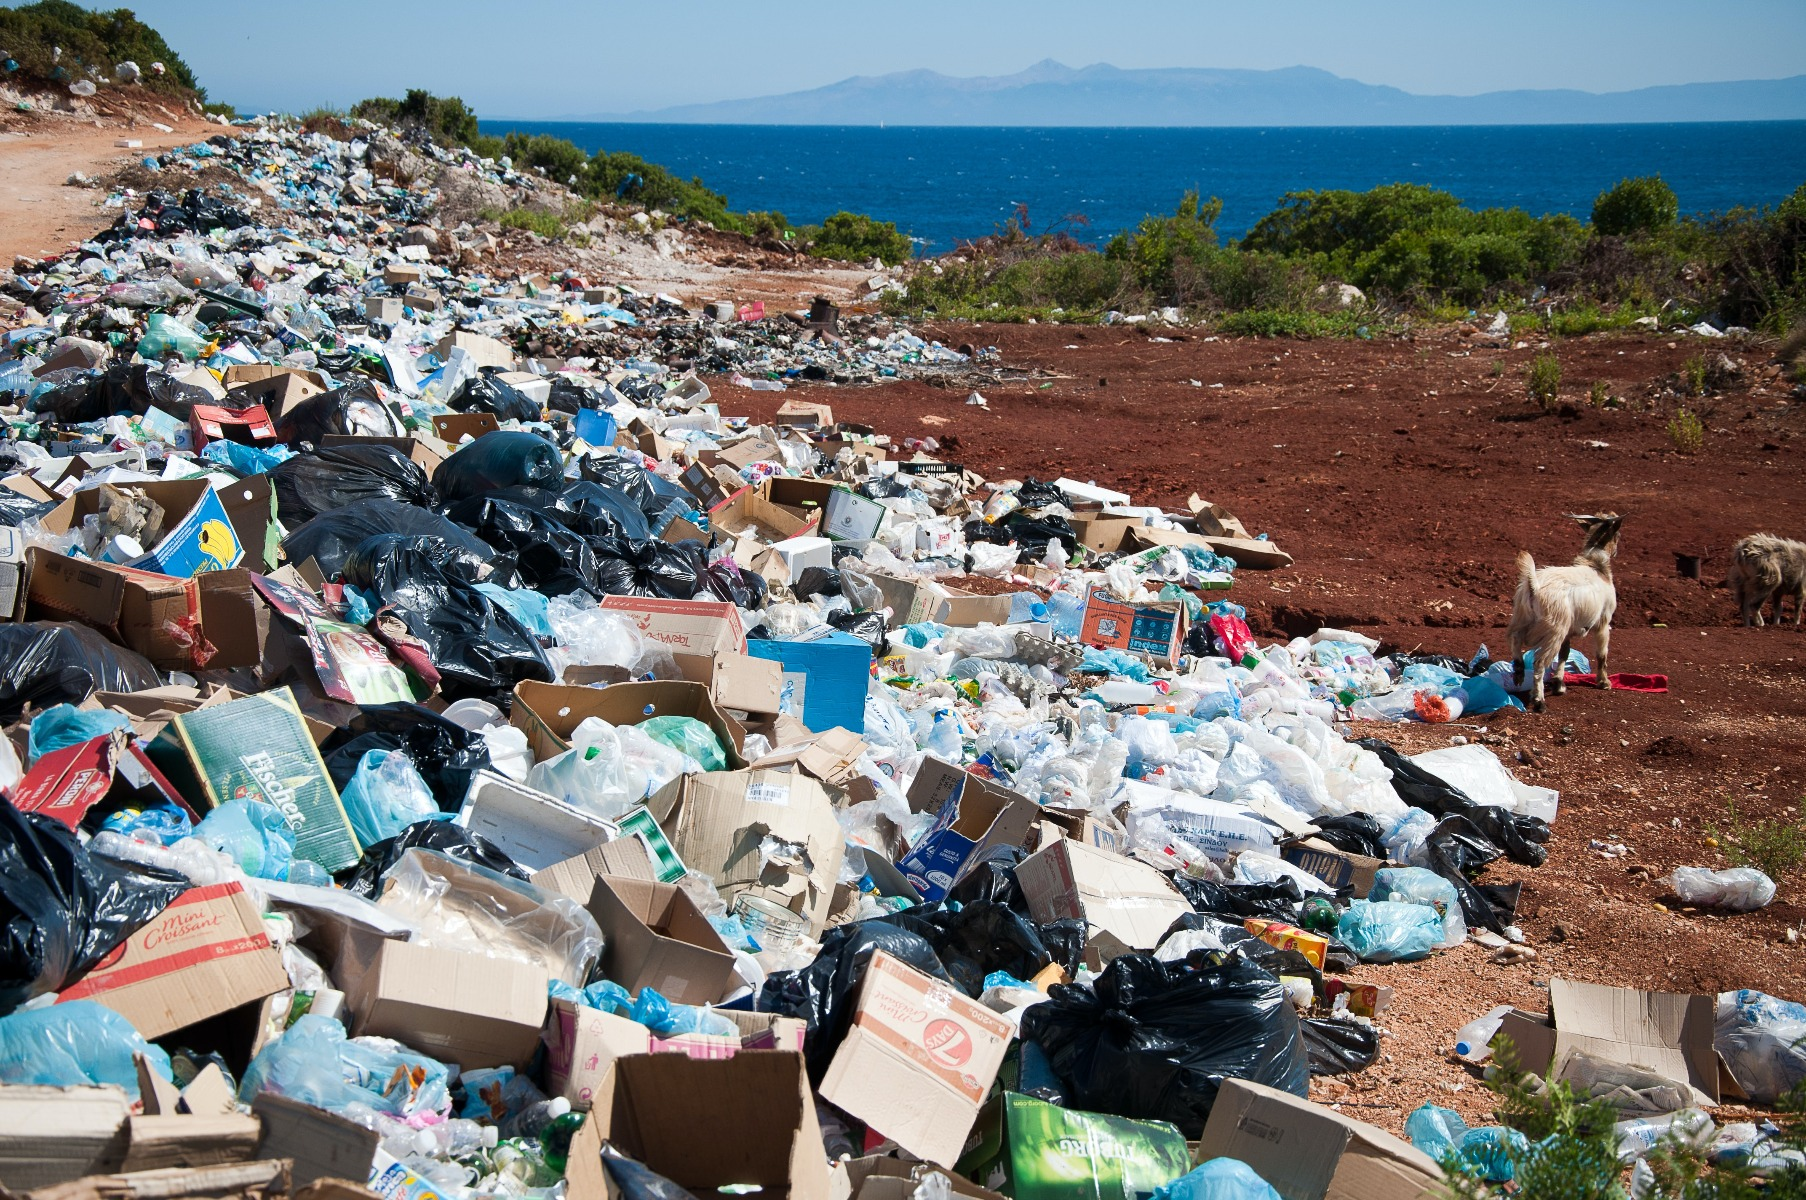 large garbage patch with package waste near ocean